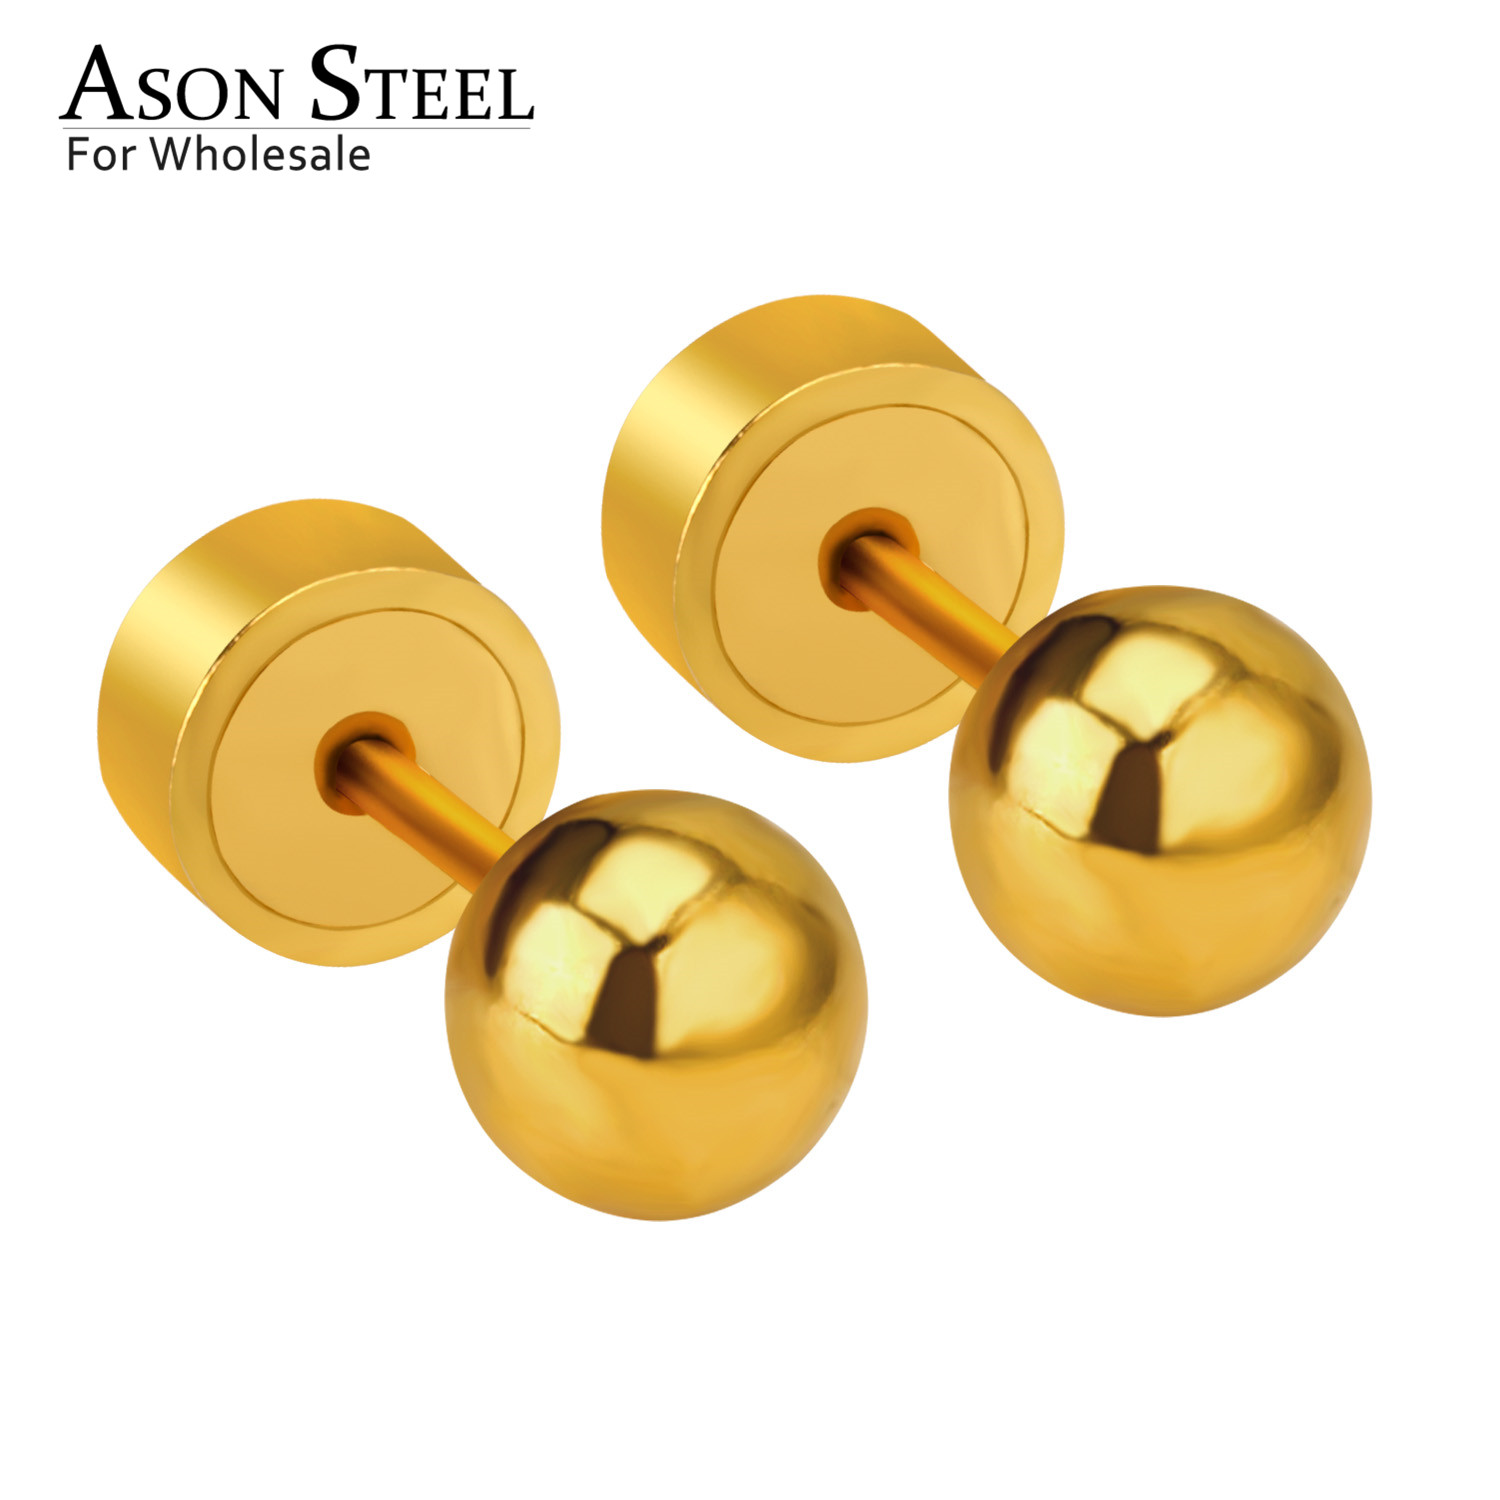 ASONSTEEL Stainless Steel Gold/Silver Color Ball Press Stud Earrings Stainless for Baby/Kid 3mm/4mm/5mm Round Earring 2020(China)